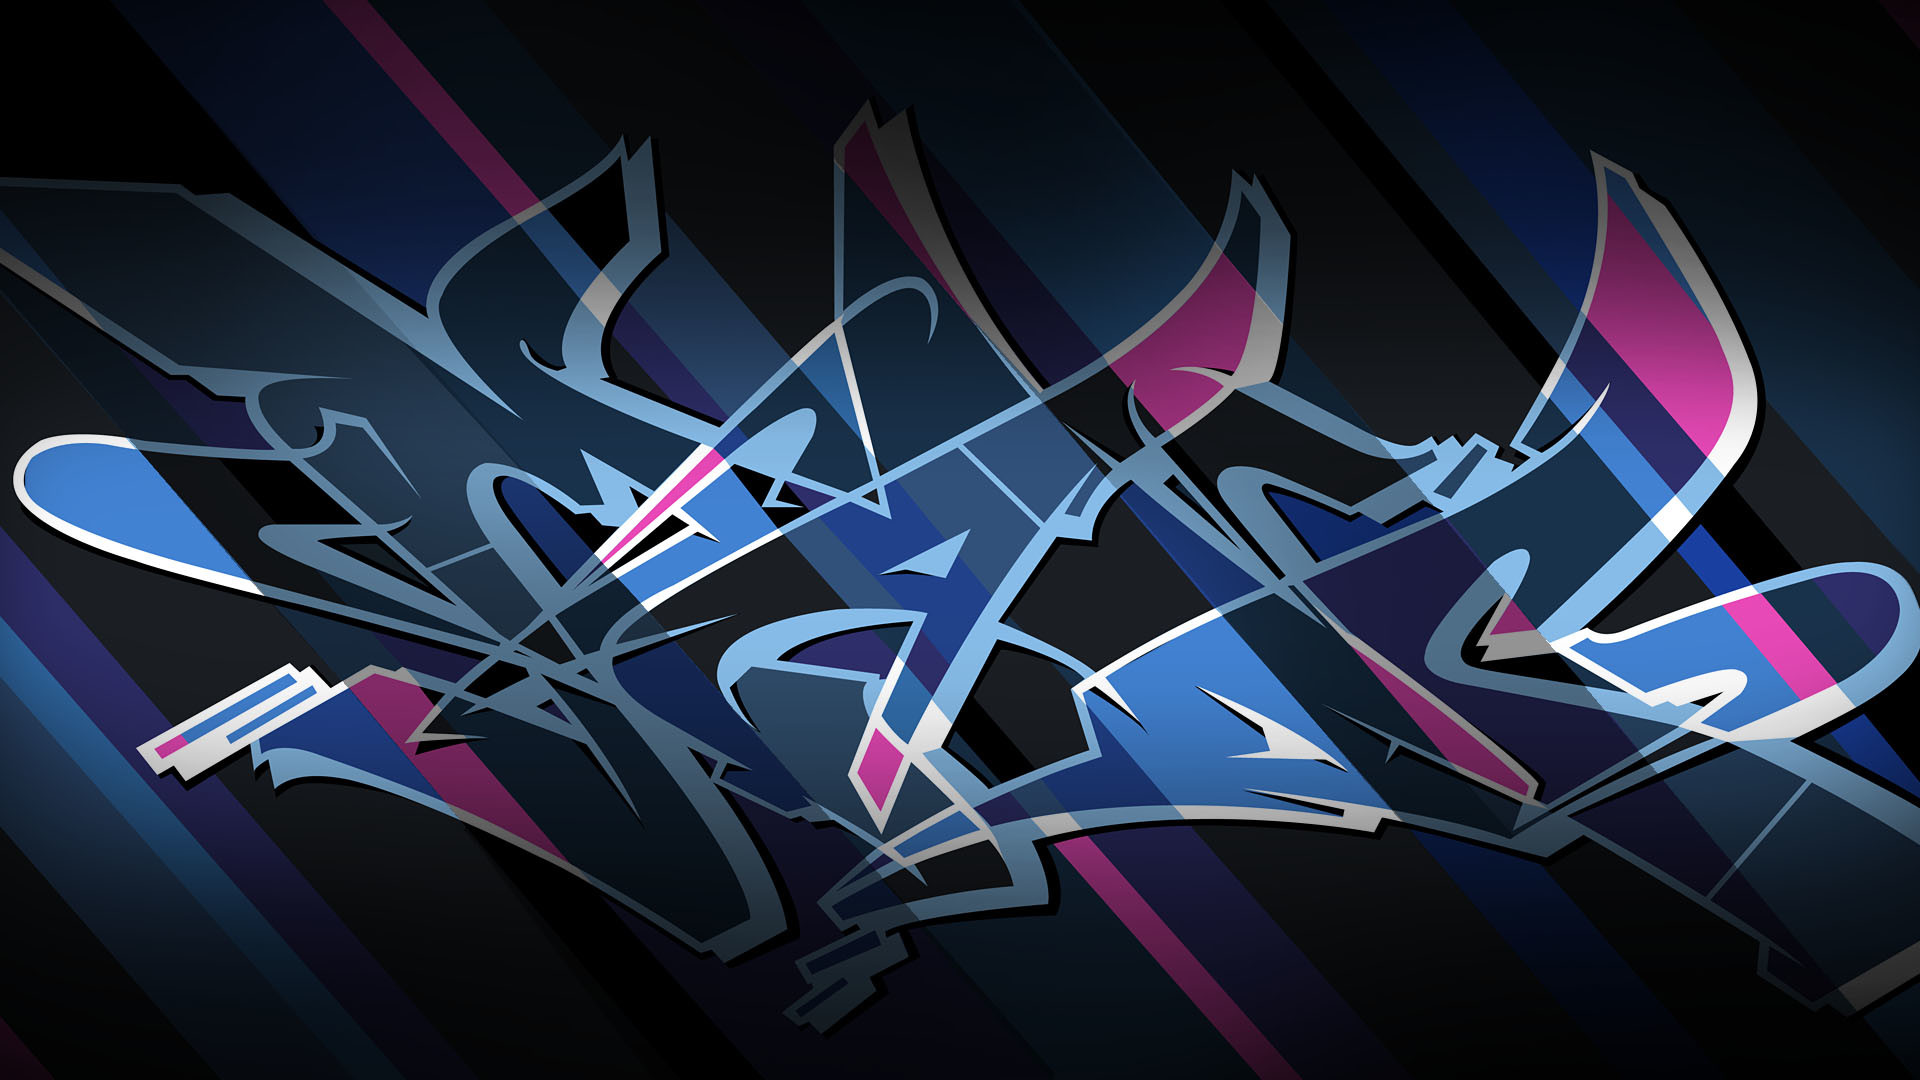 Res: 1920x1080, ... Graffiti Bomber Wallpaper Wallpapers Kid Ink Bombing Science Graffiti  Blog Madc Design ...